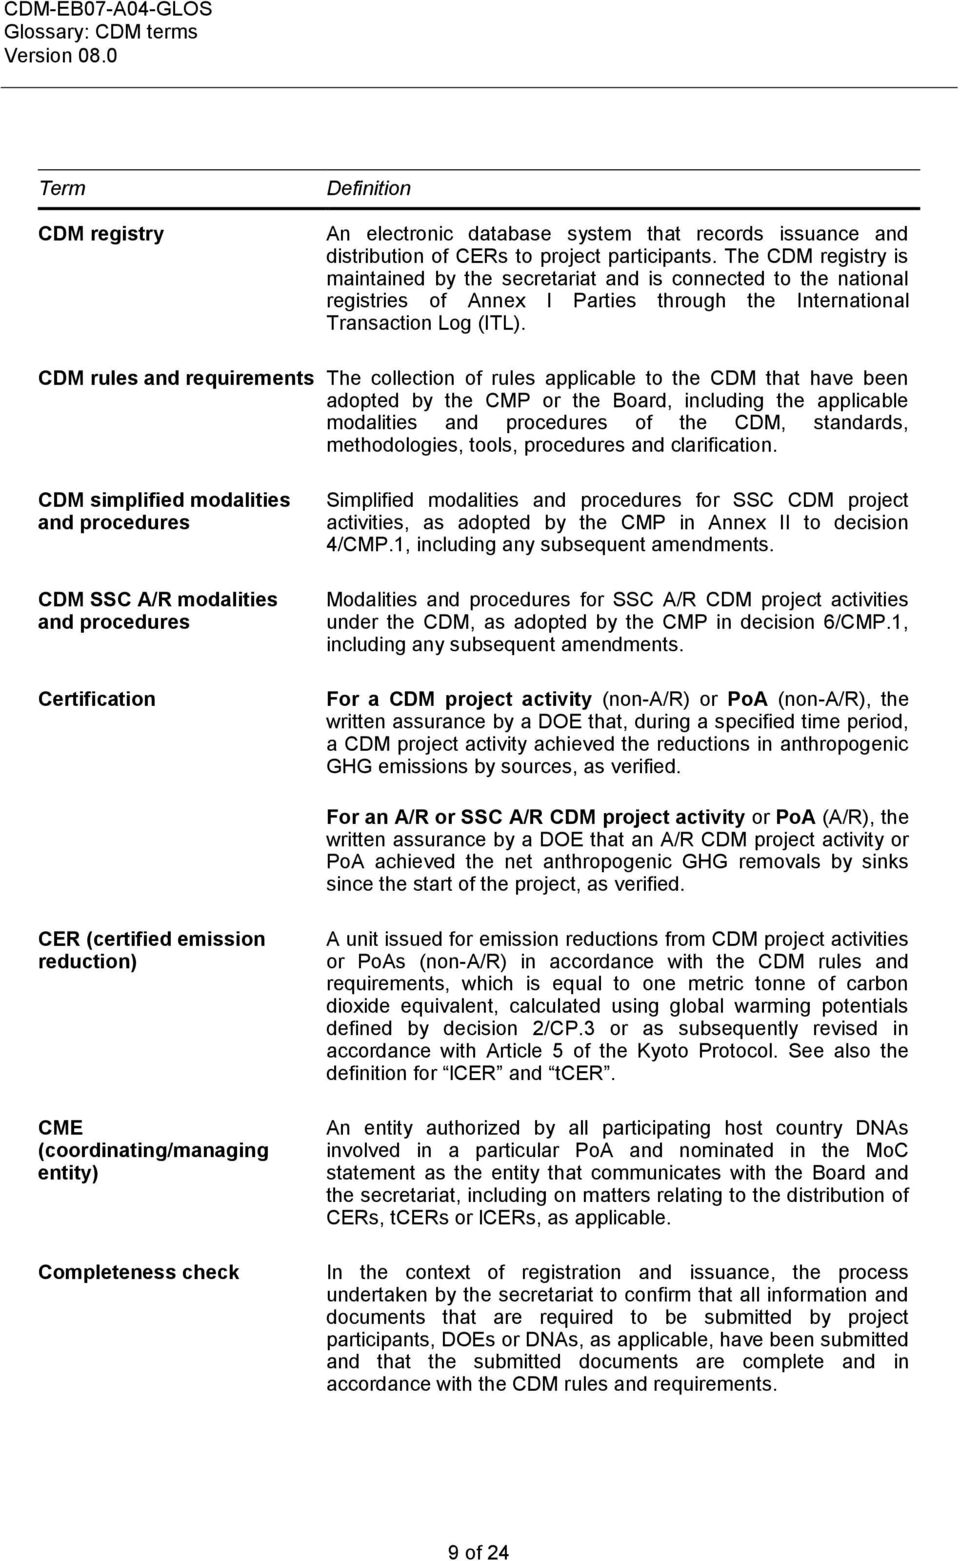 CDM rules and requirements The collection of rules applicable to the CDM that have been adopted by the CMP or the Board, including the applicable modalities and procedures of the CDM, standards,